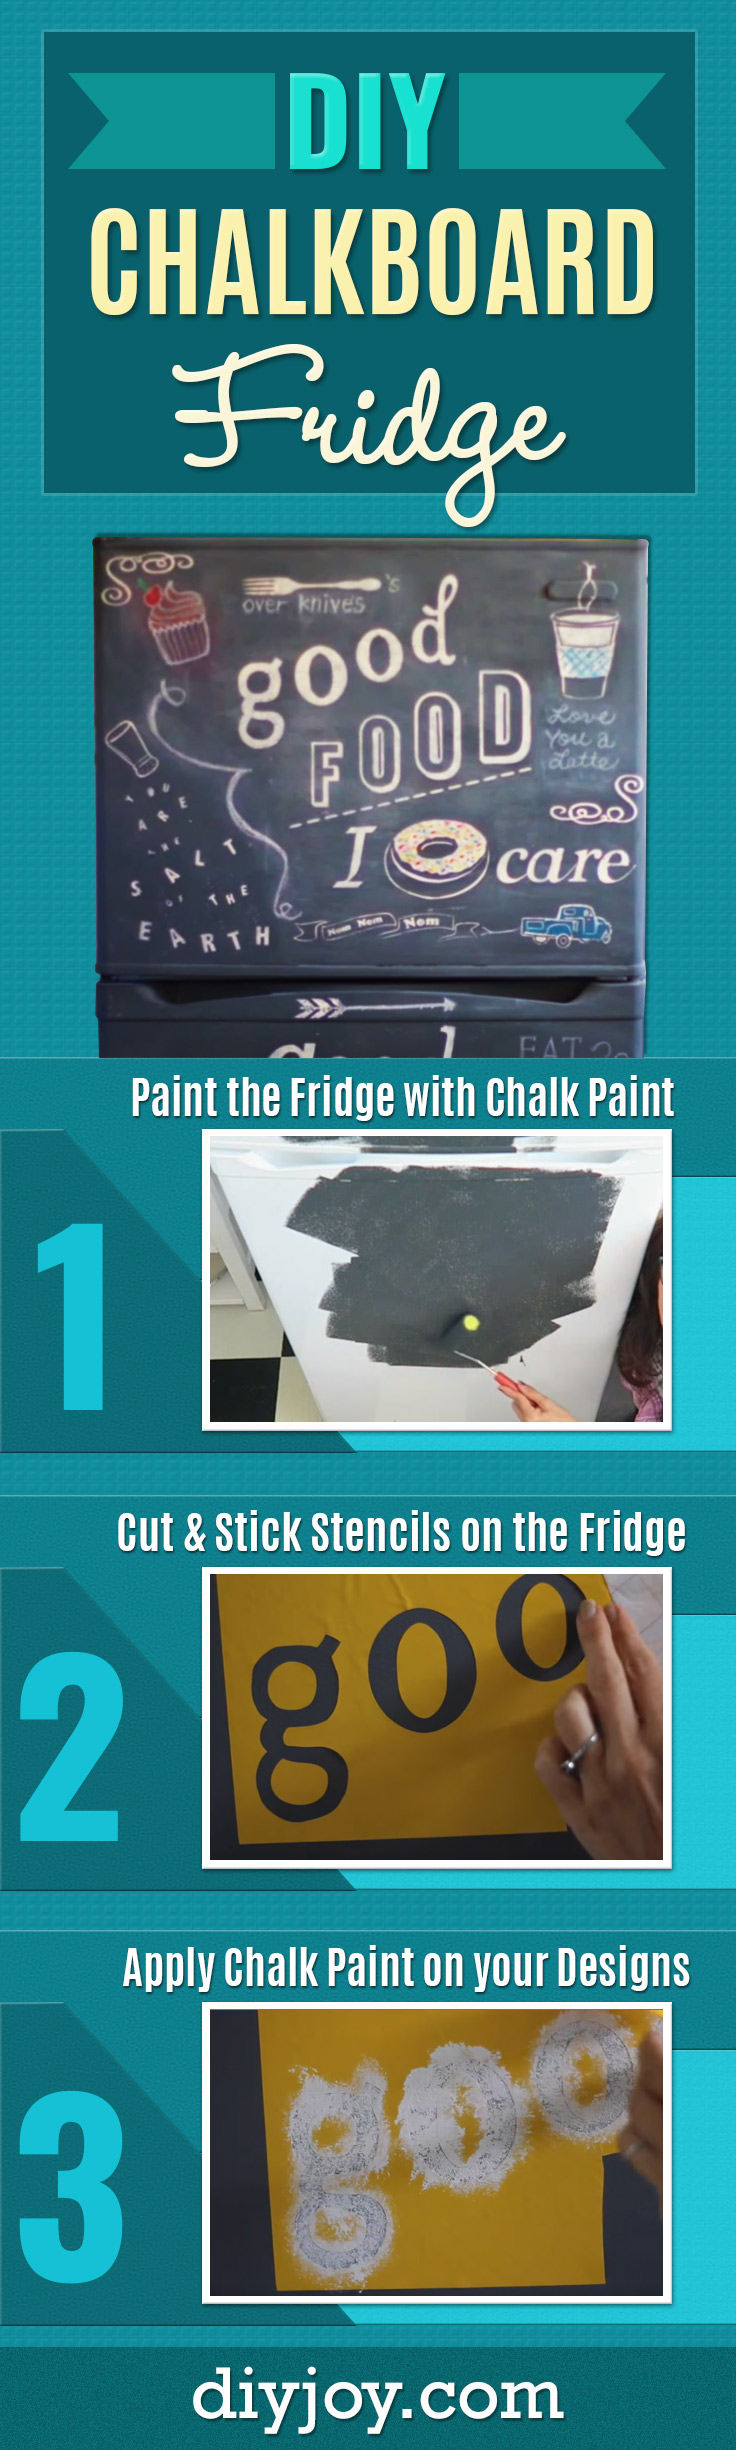 She Found A Fridge On Craigslist And Shows How To Make An Absolutely ...